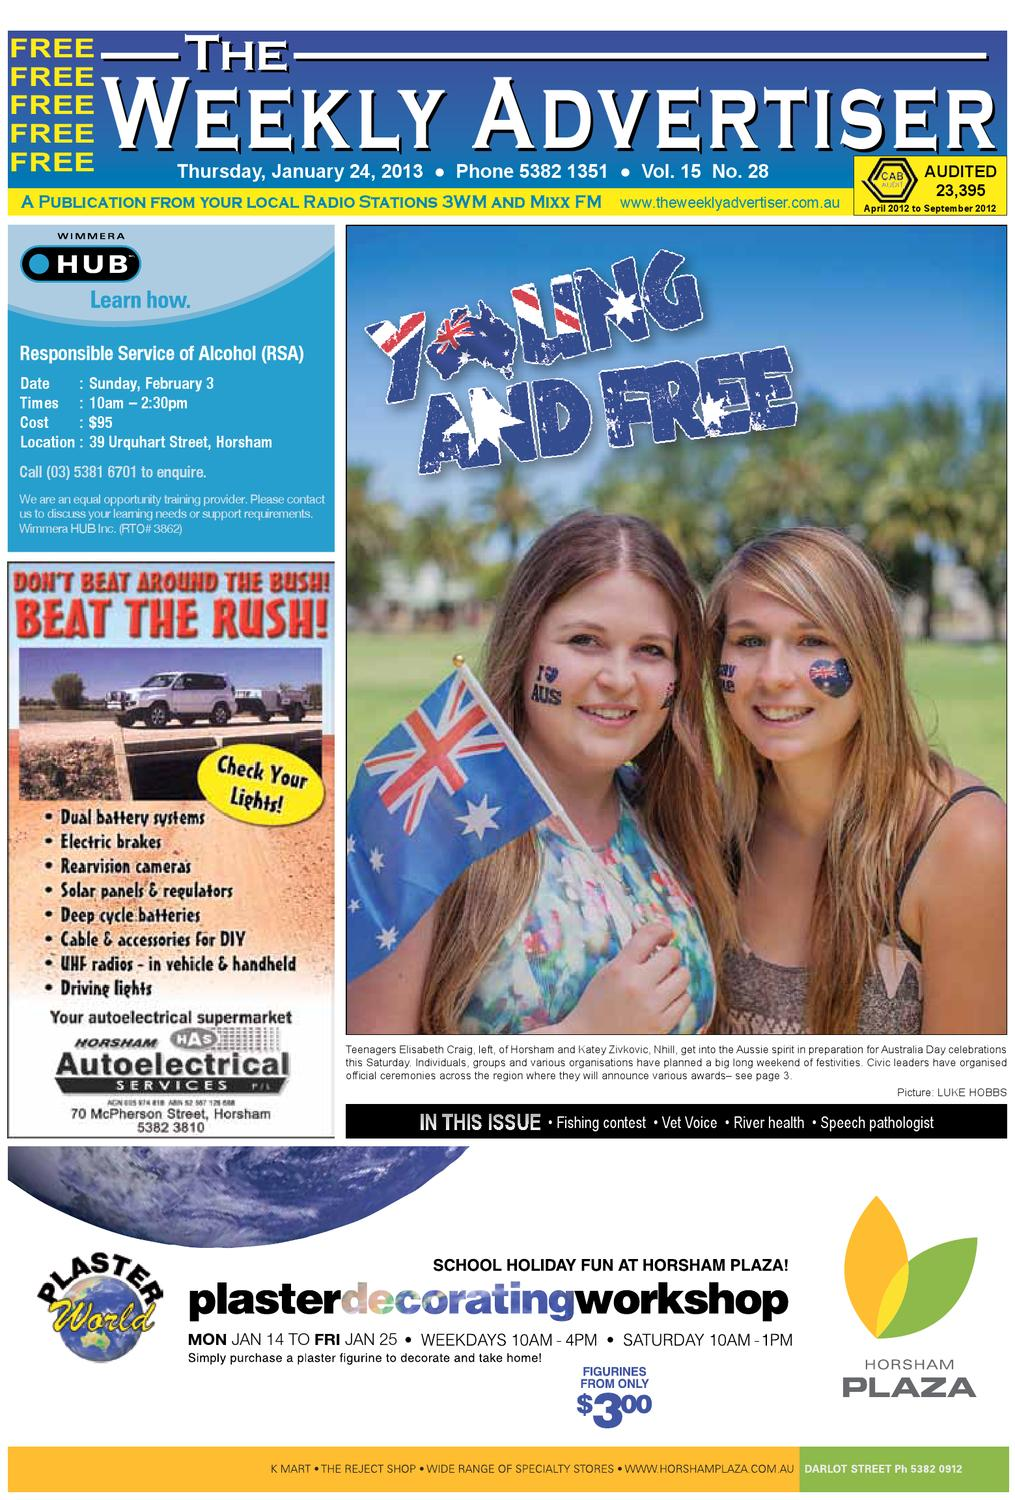 Justice scale stock image image 605751 - The Weekly Advertiser Thursday January 24 2013 Edition By The Weekly Advertiser Issuu